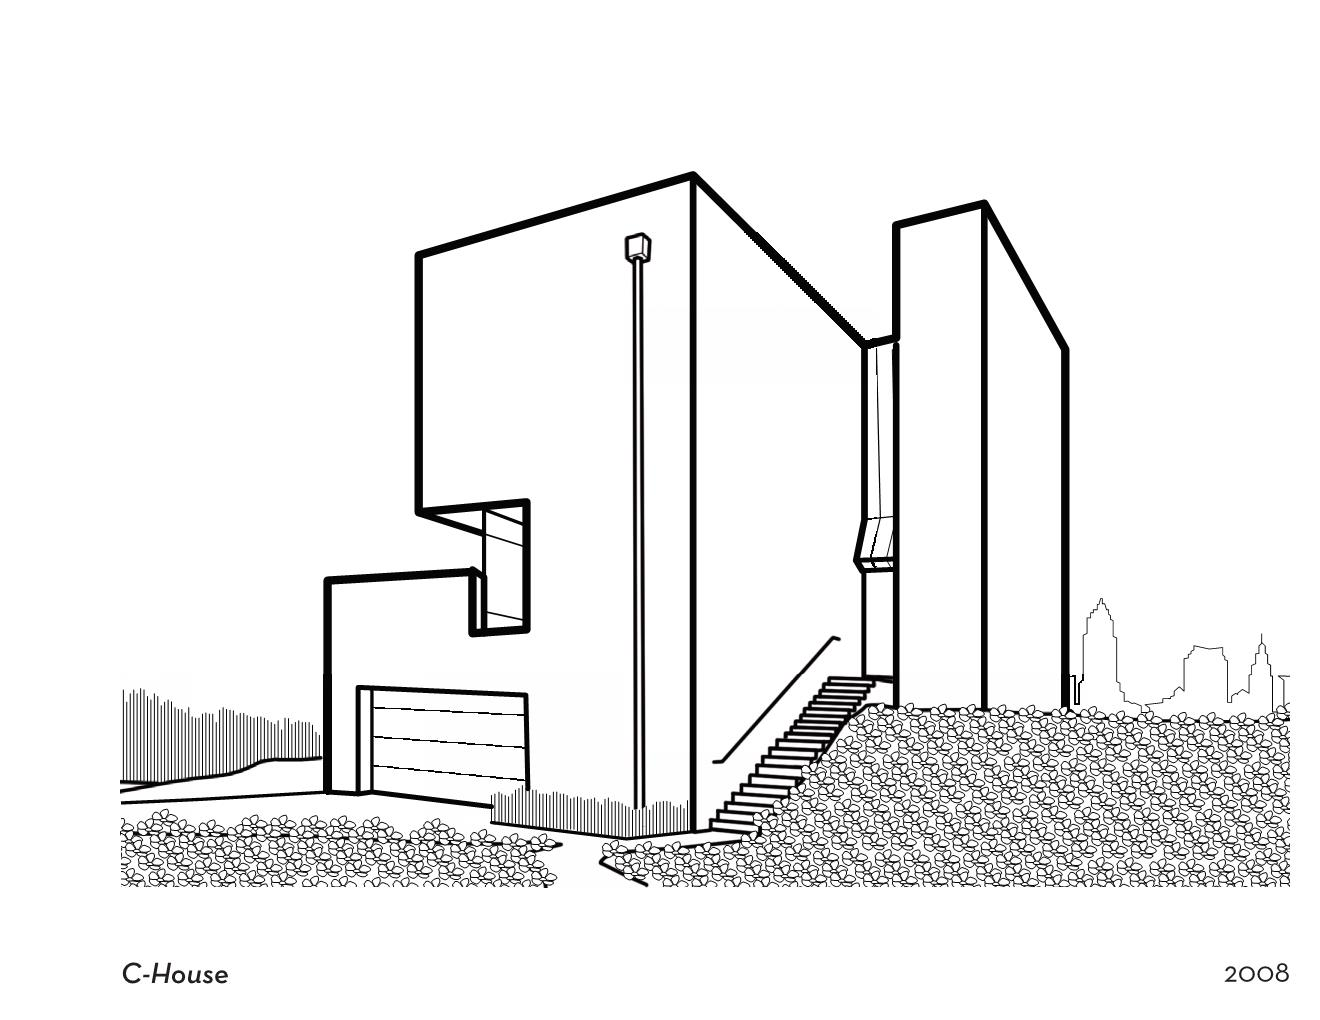 130215 Robert Maschke Architects Coloring Book DRAFT Page 016.jpg